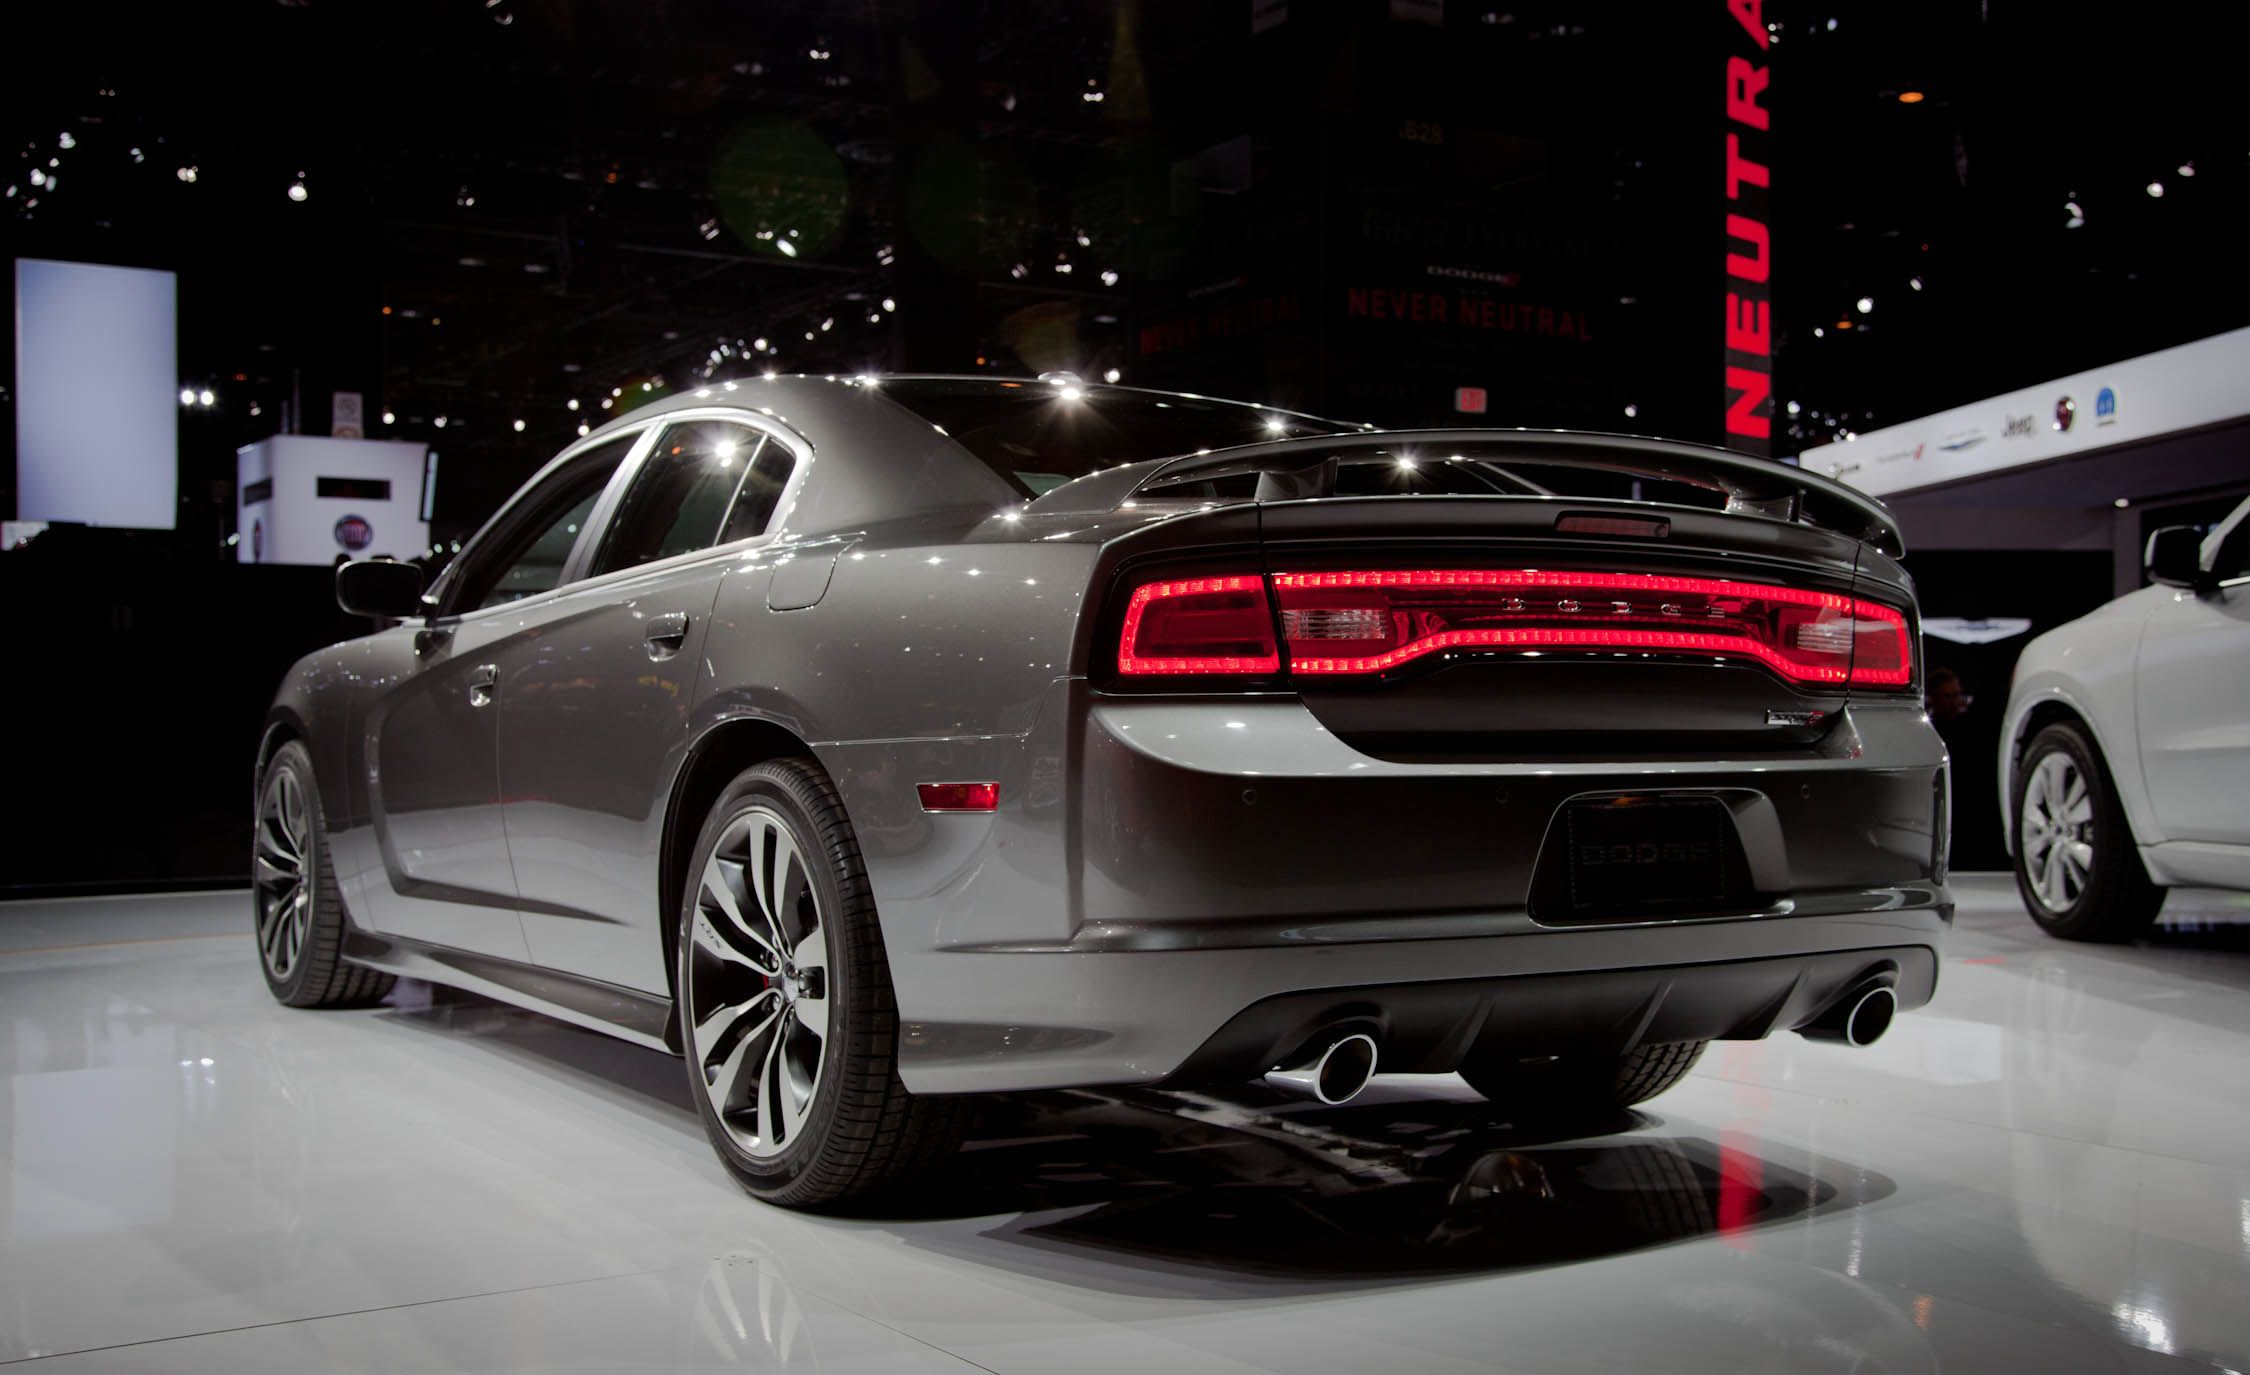 2012 Dodge Charger Srt8 Photos And Info Dodge Charger News 8211 Car And Driver